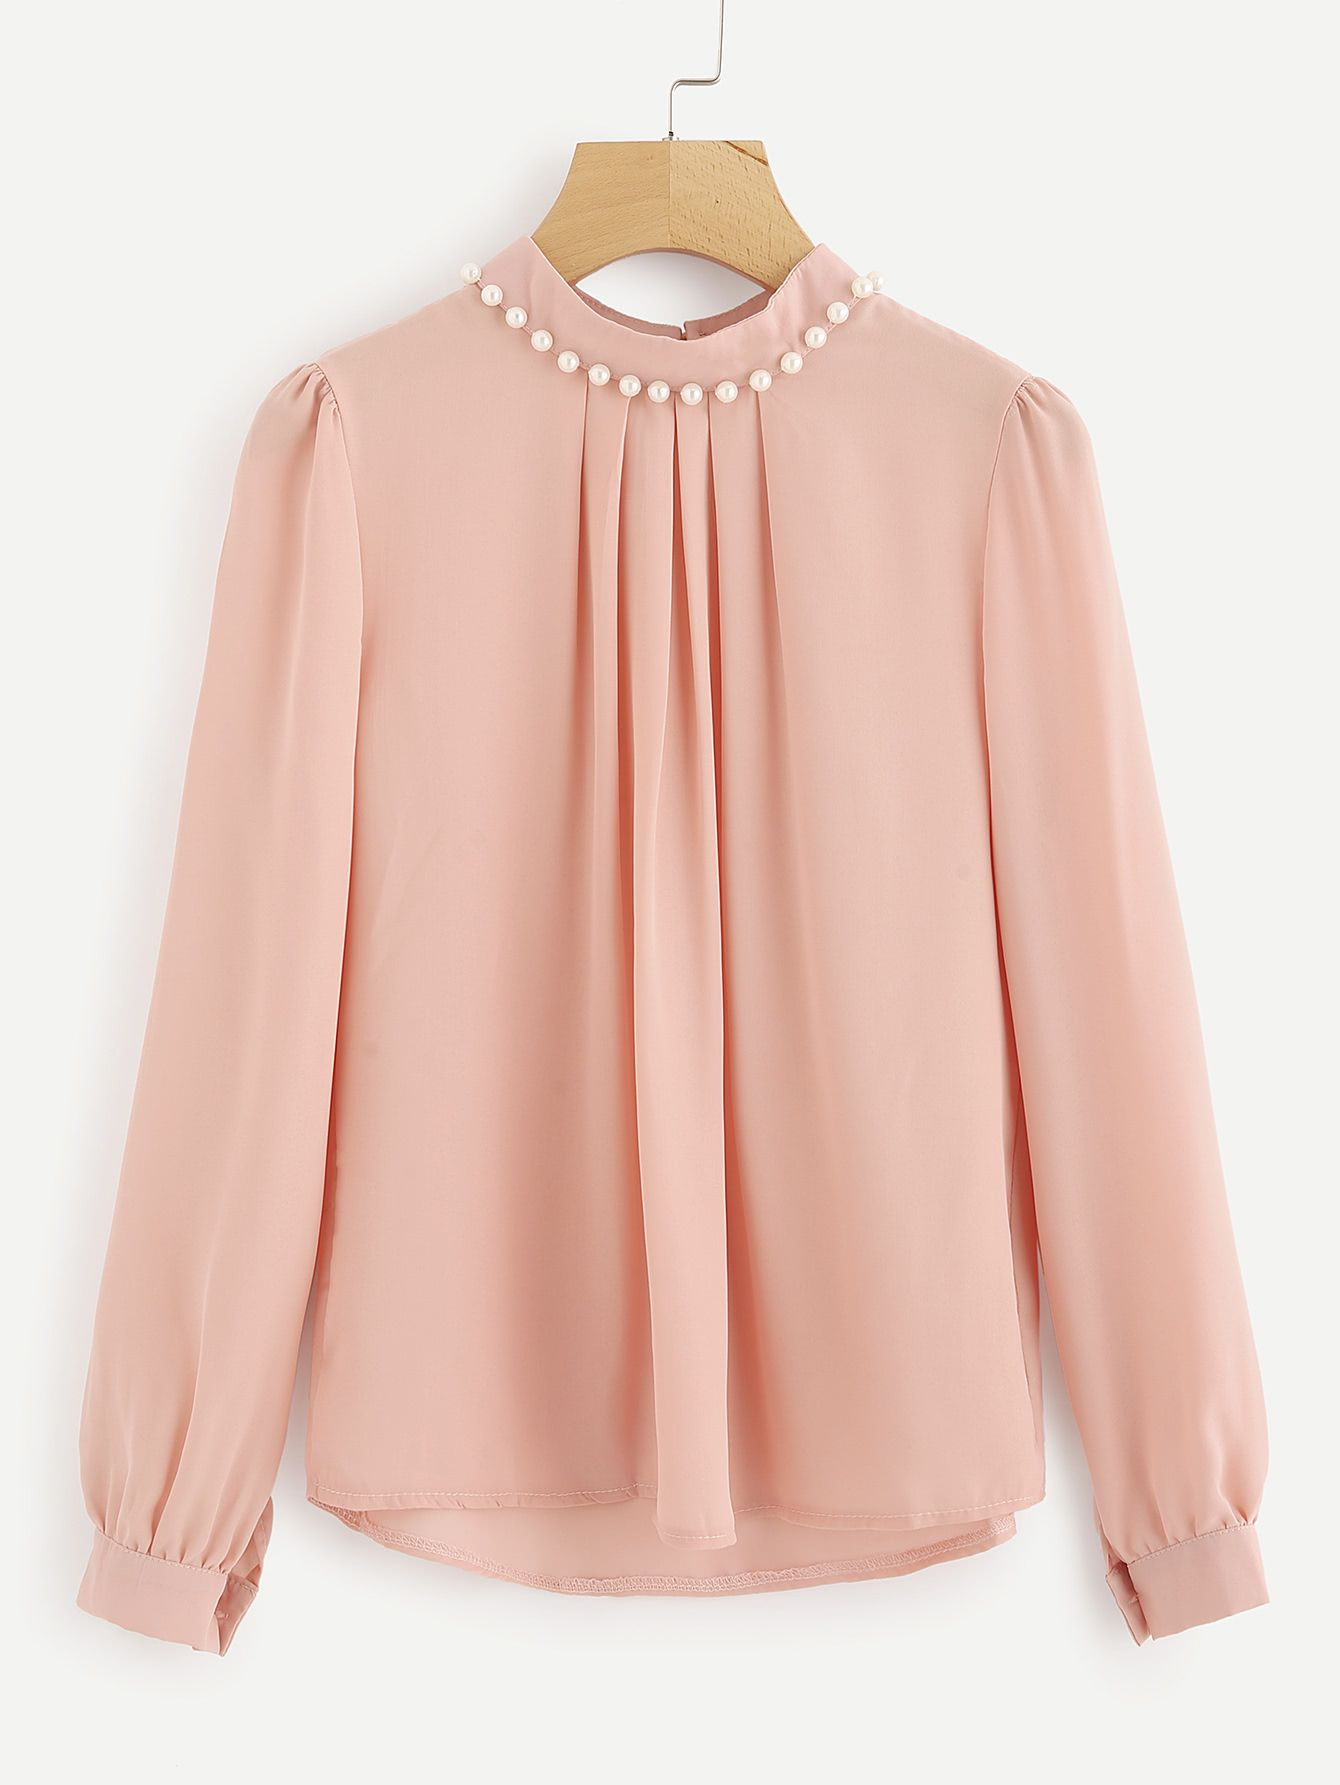 3a03d913aa Shop Pearl Beading Puff Sleeve Chiffon Blouse online. SheIn offers Pearl  Beading Puff Sleeve Chiffon Blouse & more to fit your fashionable needs.